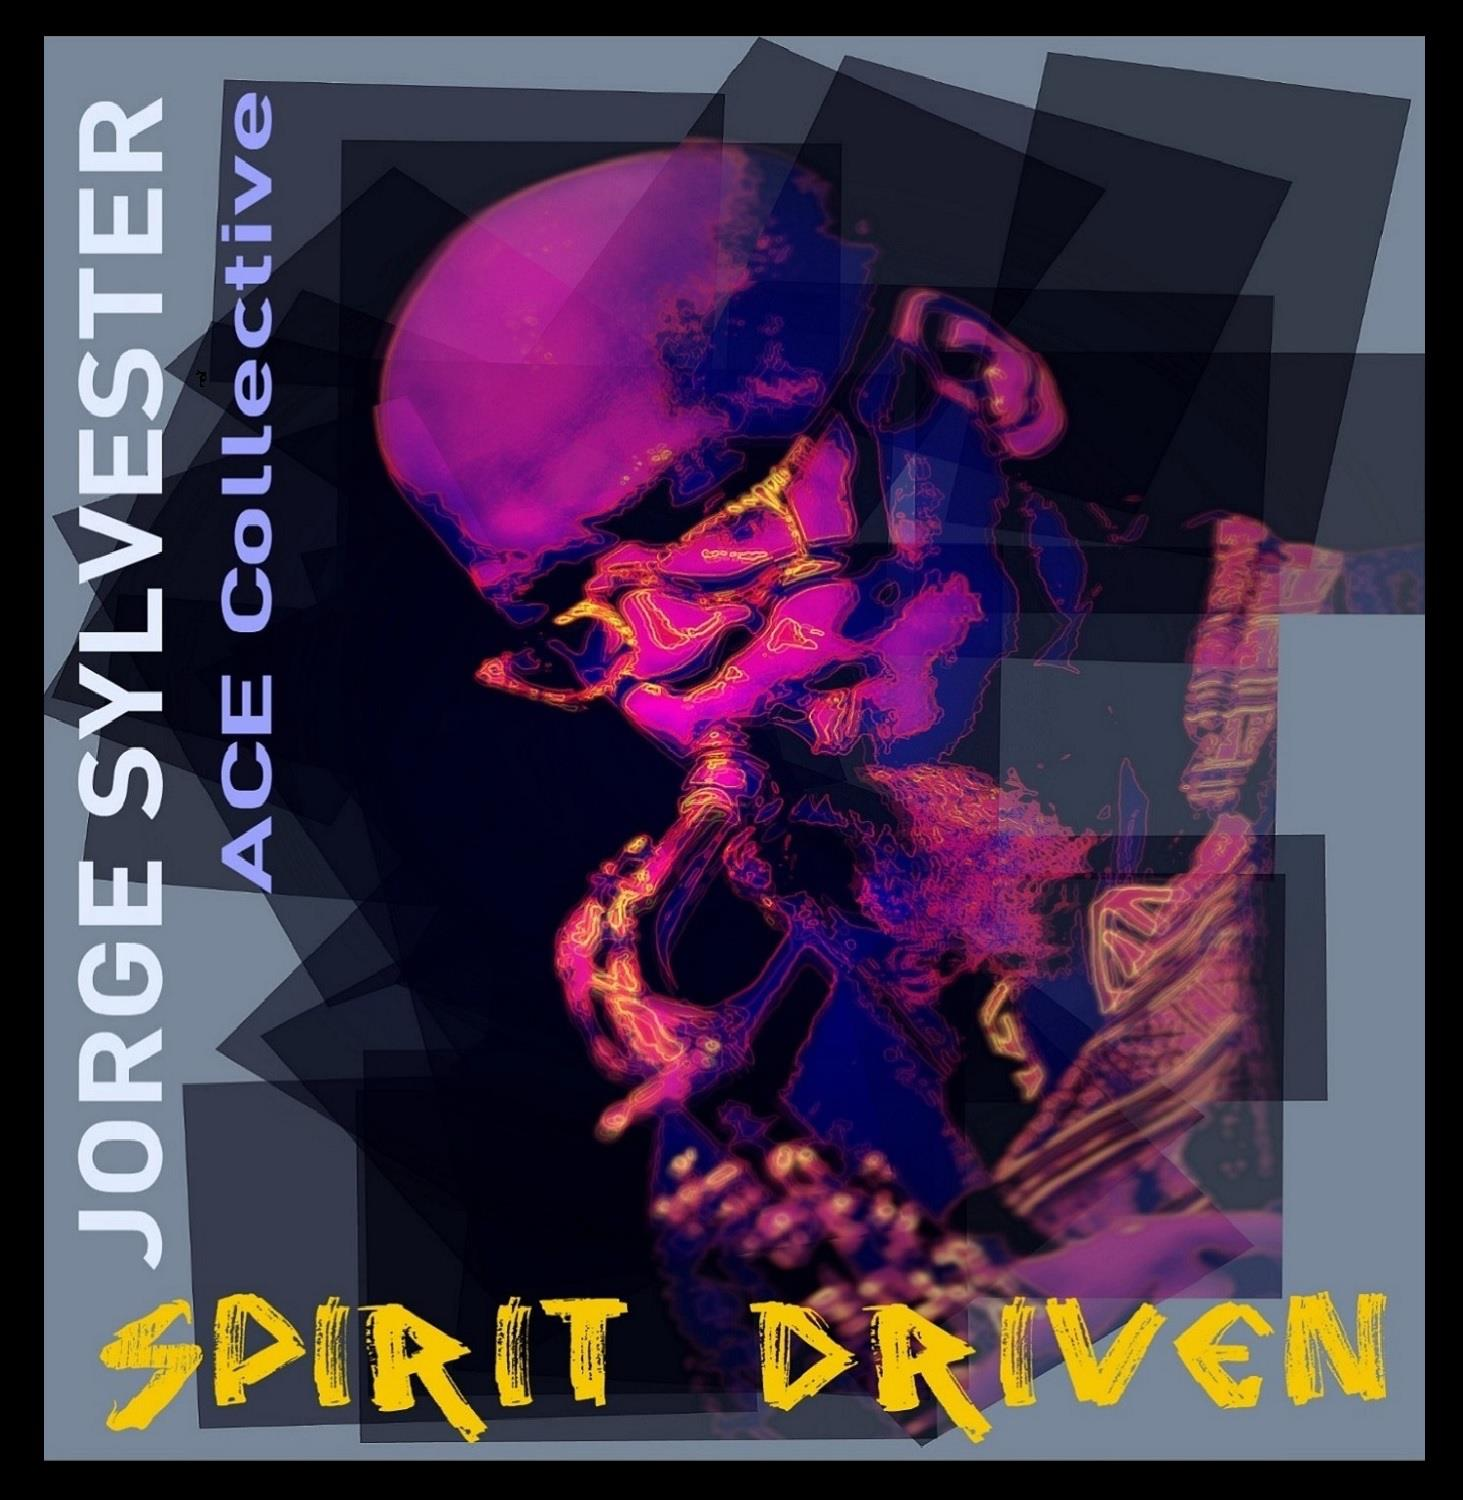 Jorge sylvester ace collective - spirit driven